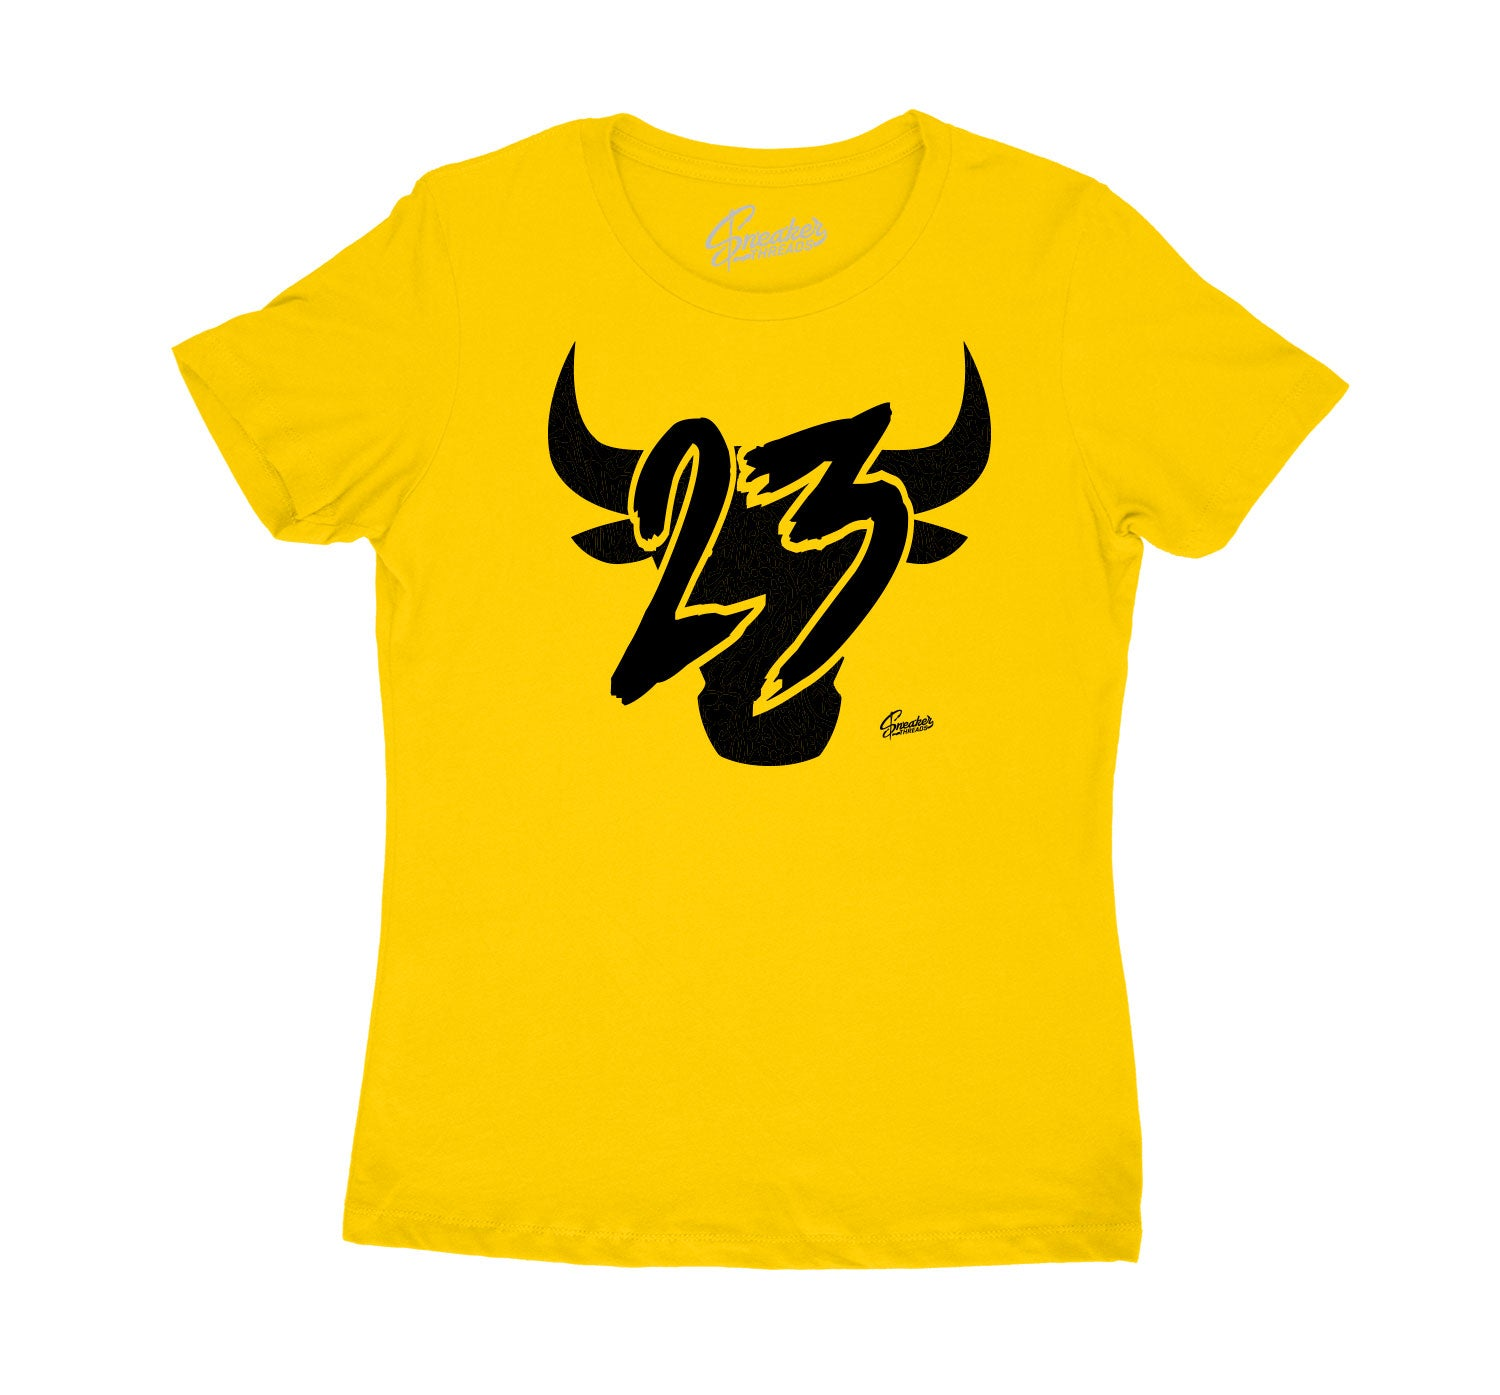 Uni Gold Jordan 9 ladies t shirt collection